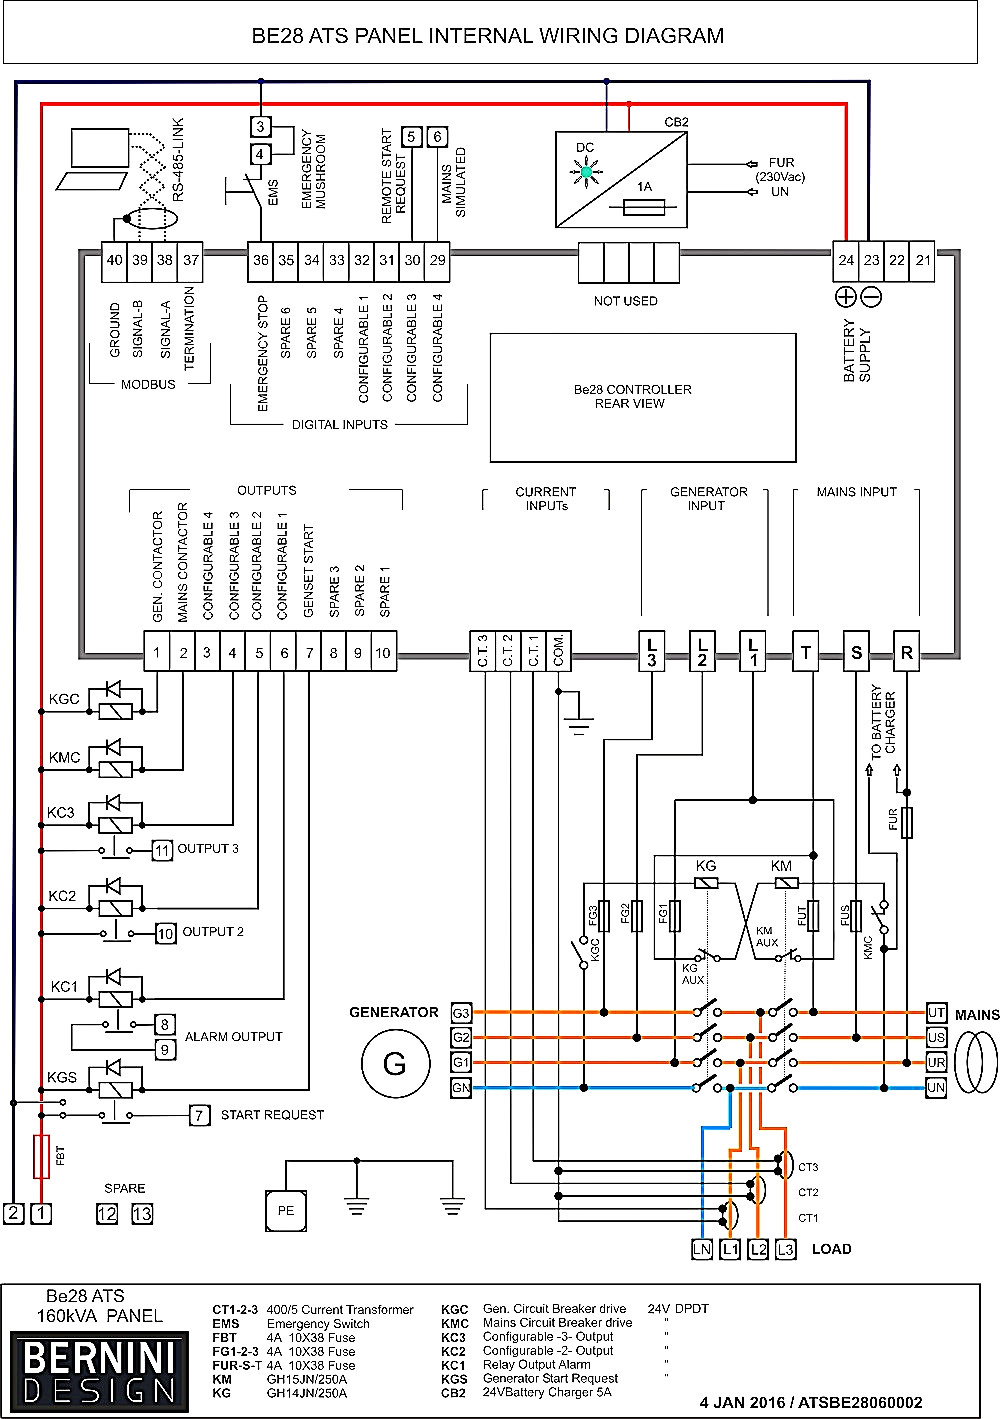 generac 6333 wiring diagram Collection-Generac Automatic Transfer Switch Wiring Diagram Simple Design Between Solargenerator And 5-i